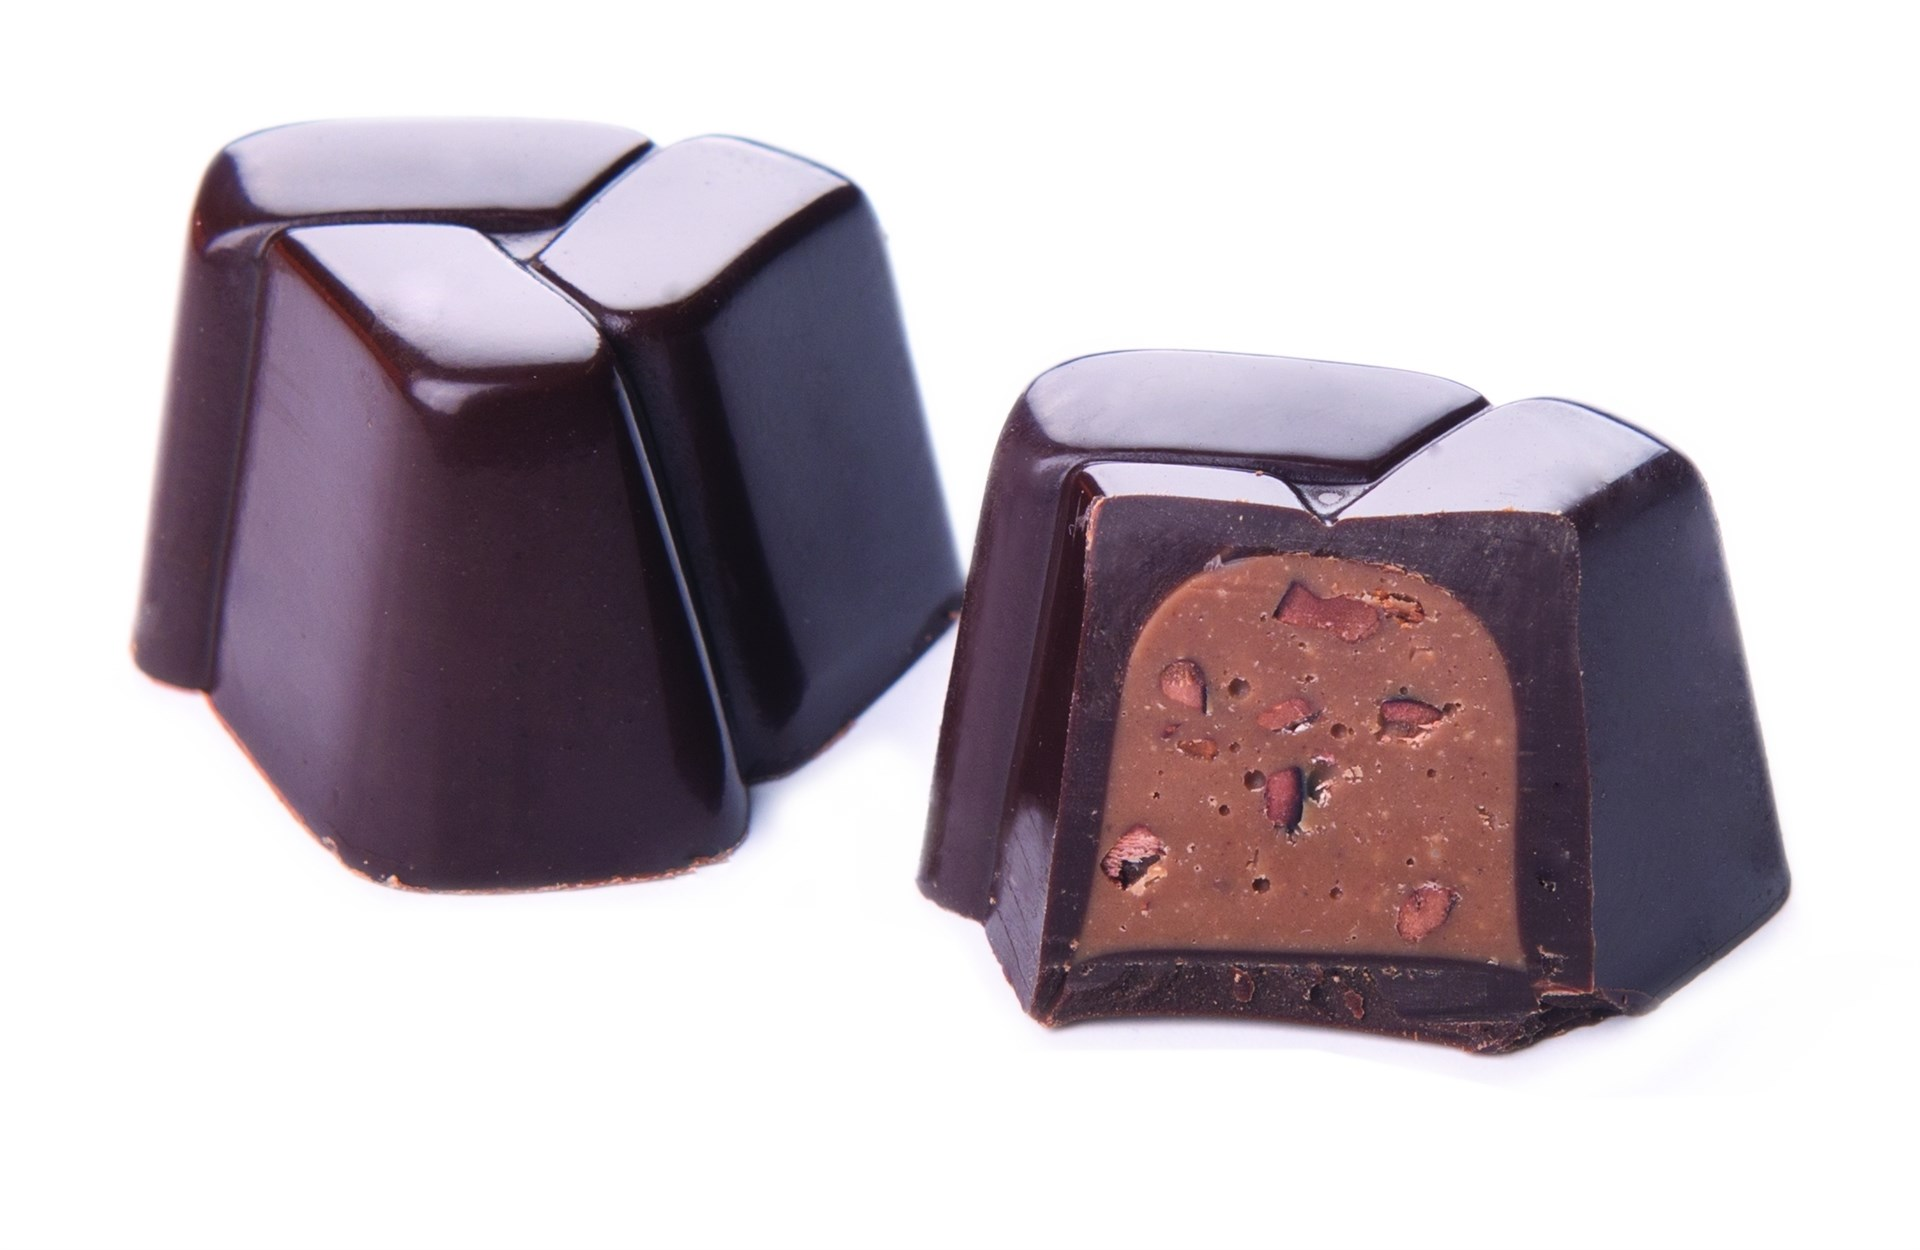 PRESTIGE DARK CHOCOLATE, HAZELNUT CREAM WITH COCOA NIBS BY GENAUVA CHOCOLATES BY GENAUVA CHOCOLATES